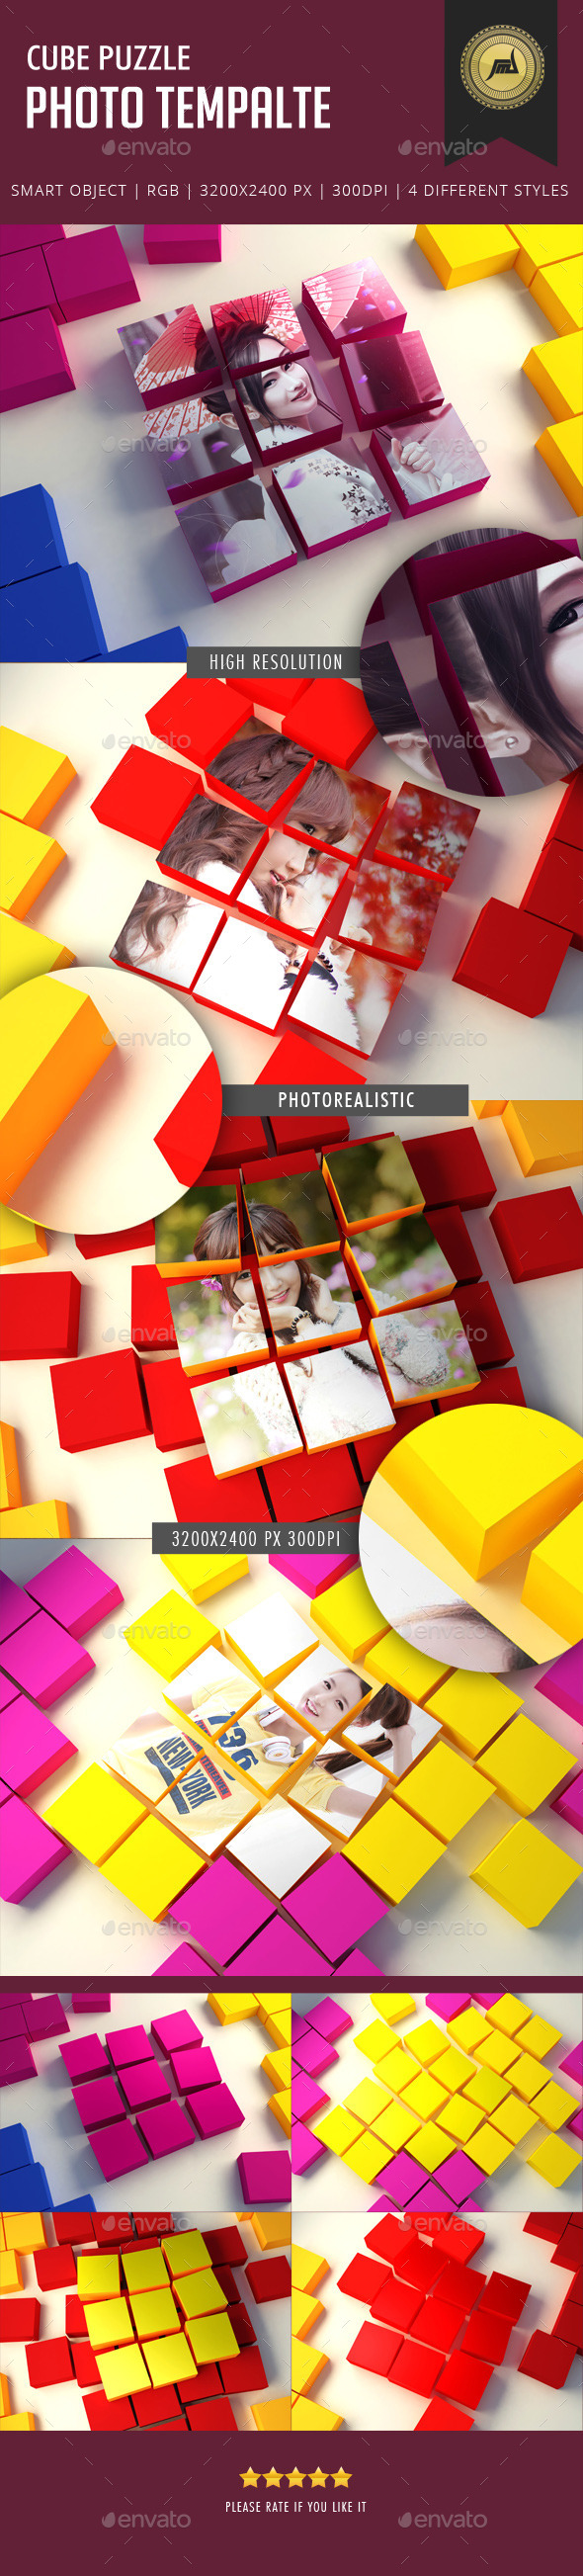 GraphicRiver Cube Puzzle Photo Template 11184797